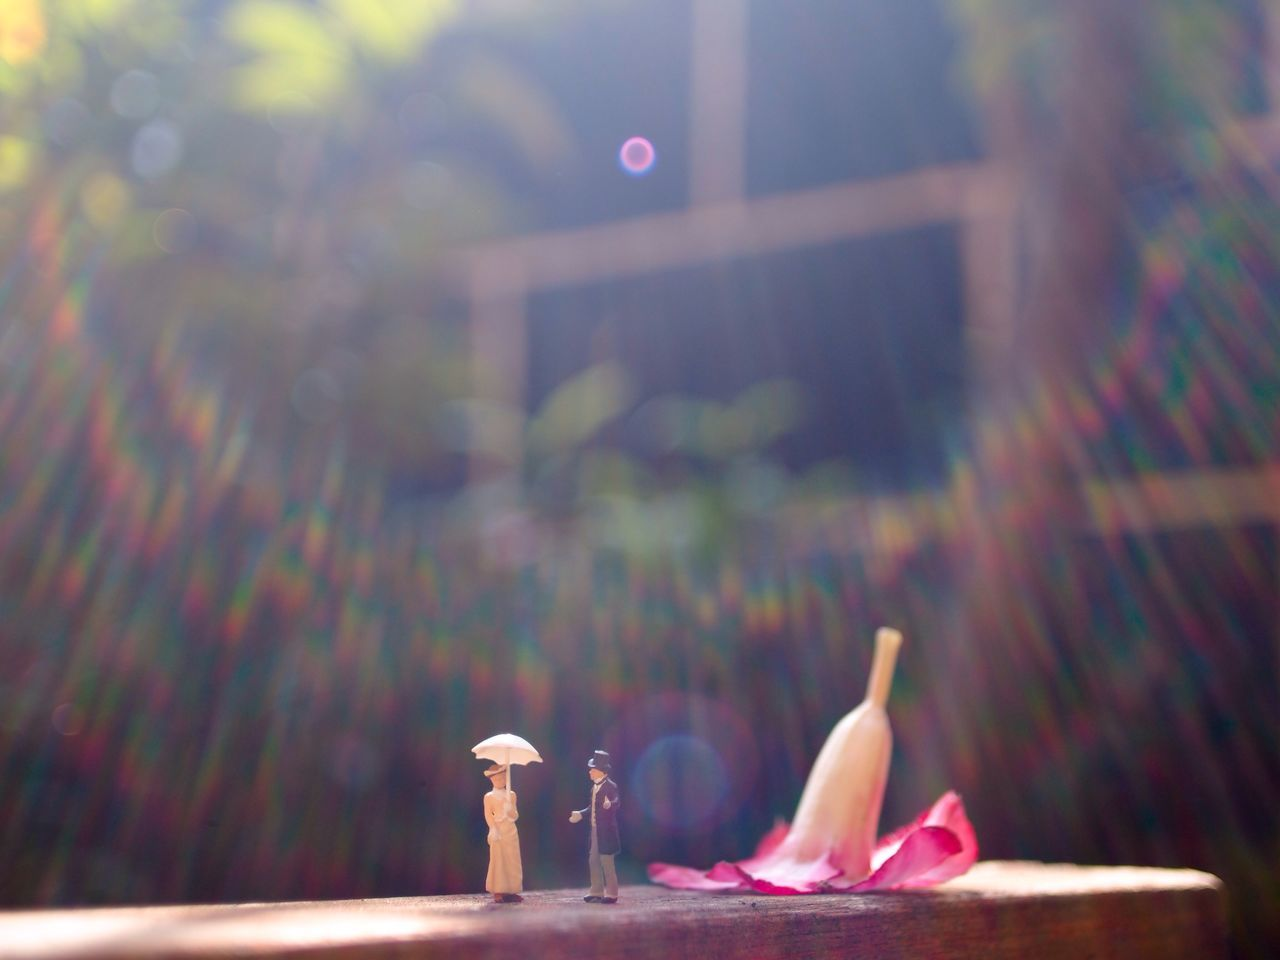 Meet Woman Variation Focus On Foreground Outdoors Person Red Multi Colored Freshness Preiser Preiserphotography Pentax 28mm Bokehlicious Bokeh Creative Creative Photography Toy Toyphotography Minifigure Miniature Flare